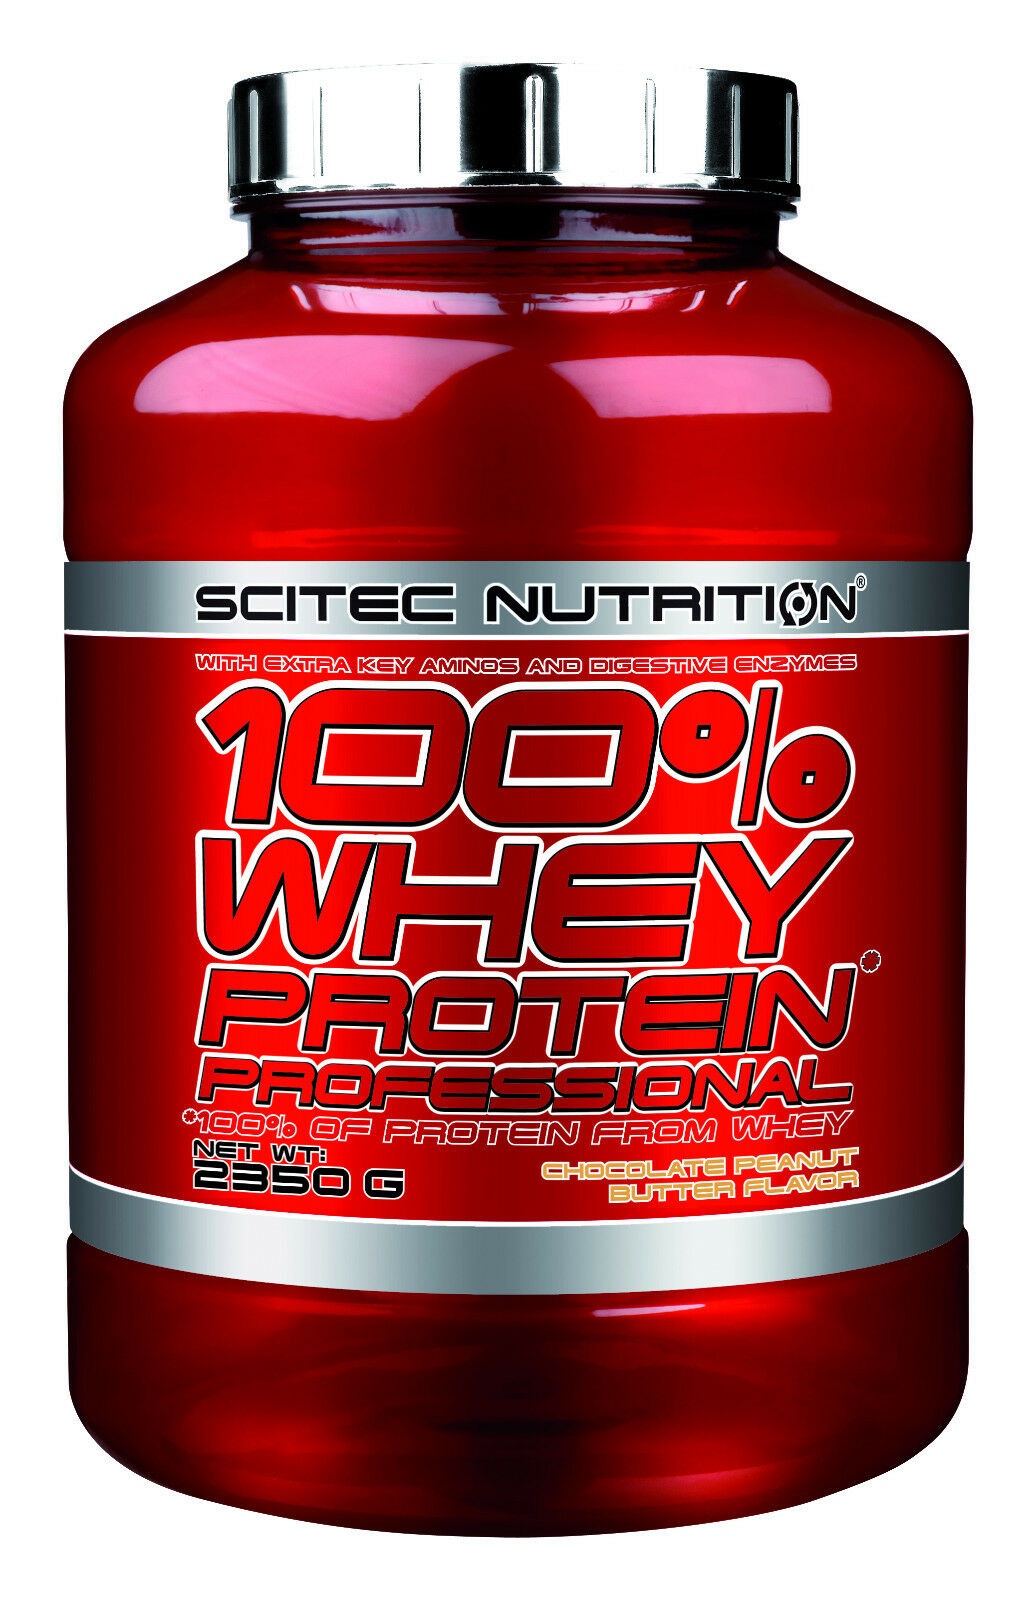 Scitec Nutrition Protein 100% Whey Protein Nutrition Prof. 2350g aus Molkenprotein + Isolate 0bf1ba